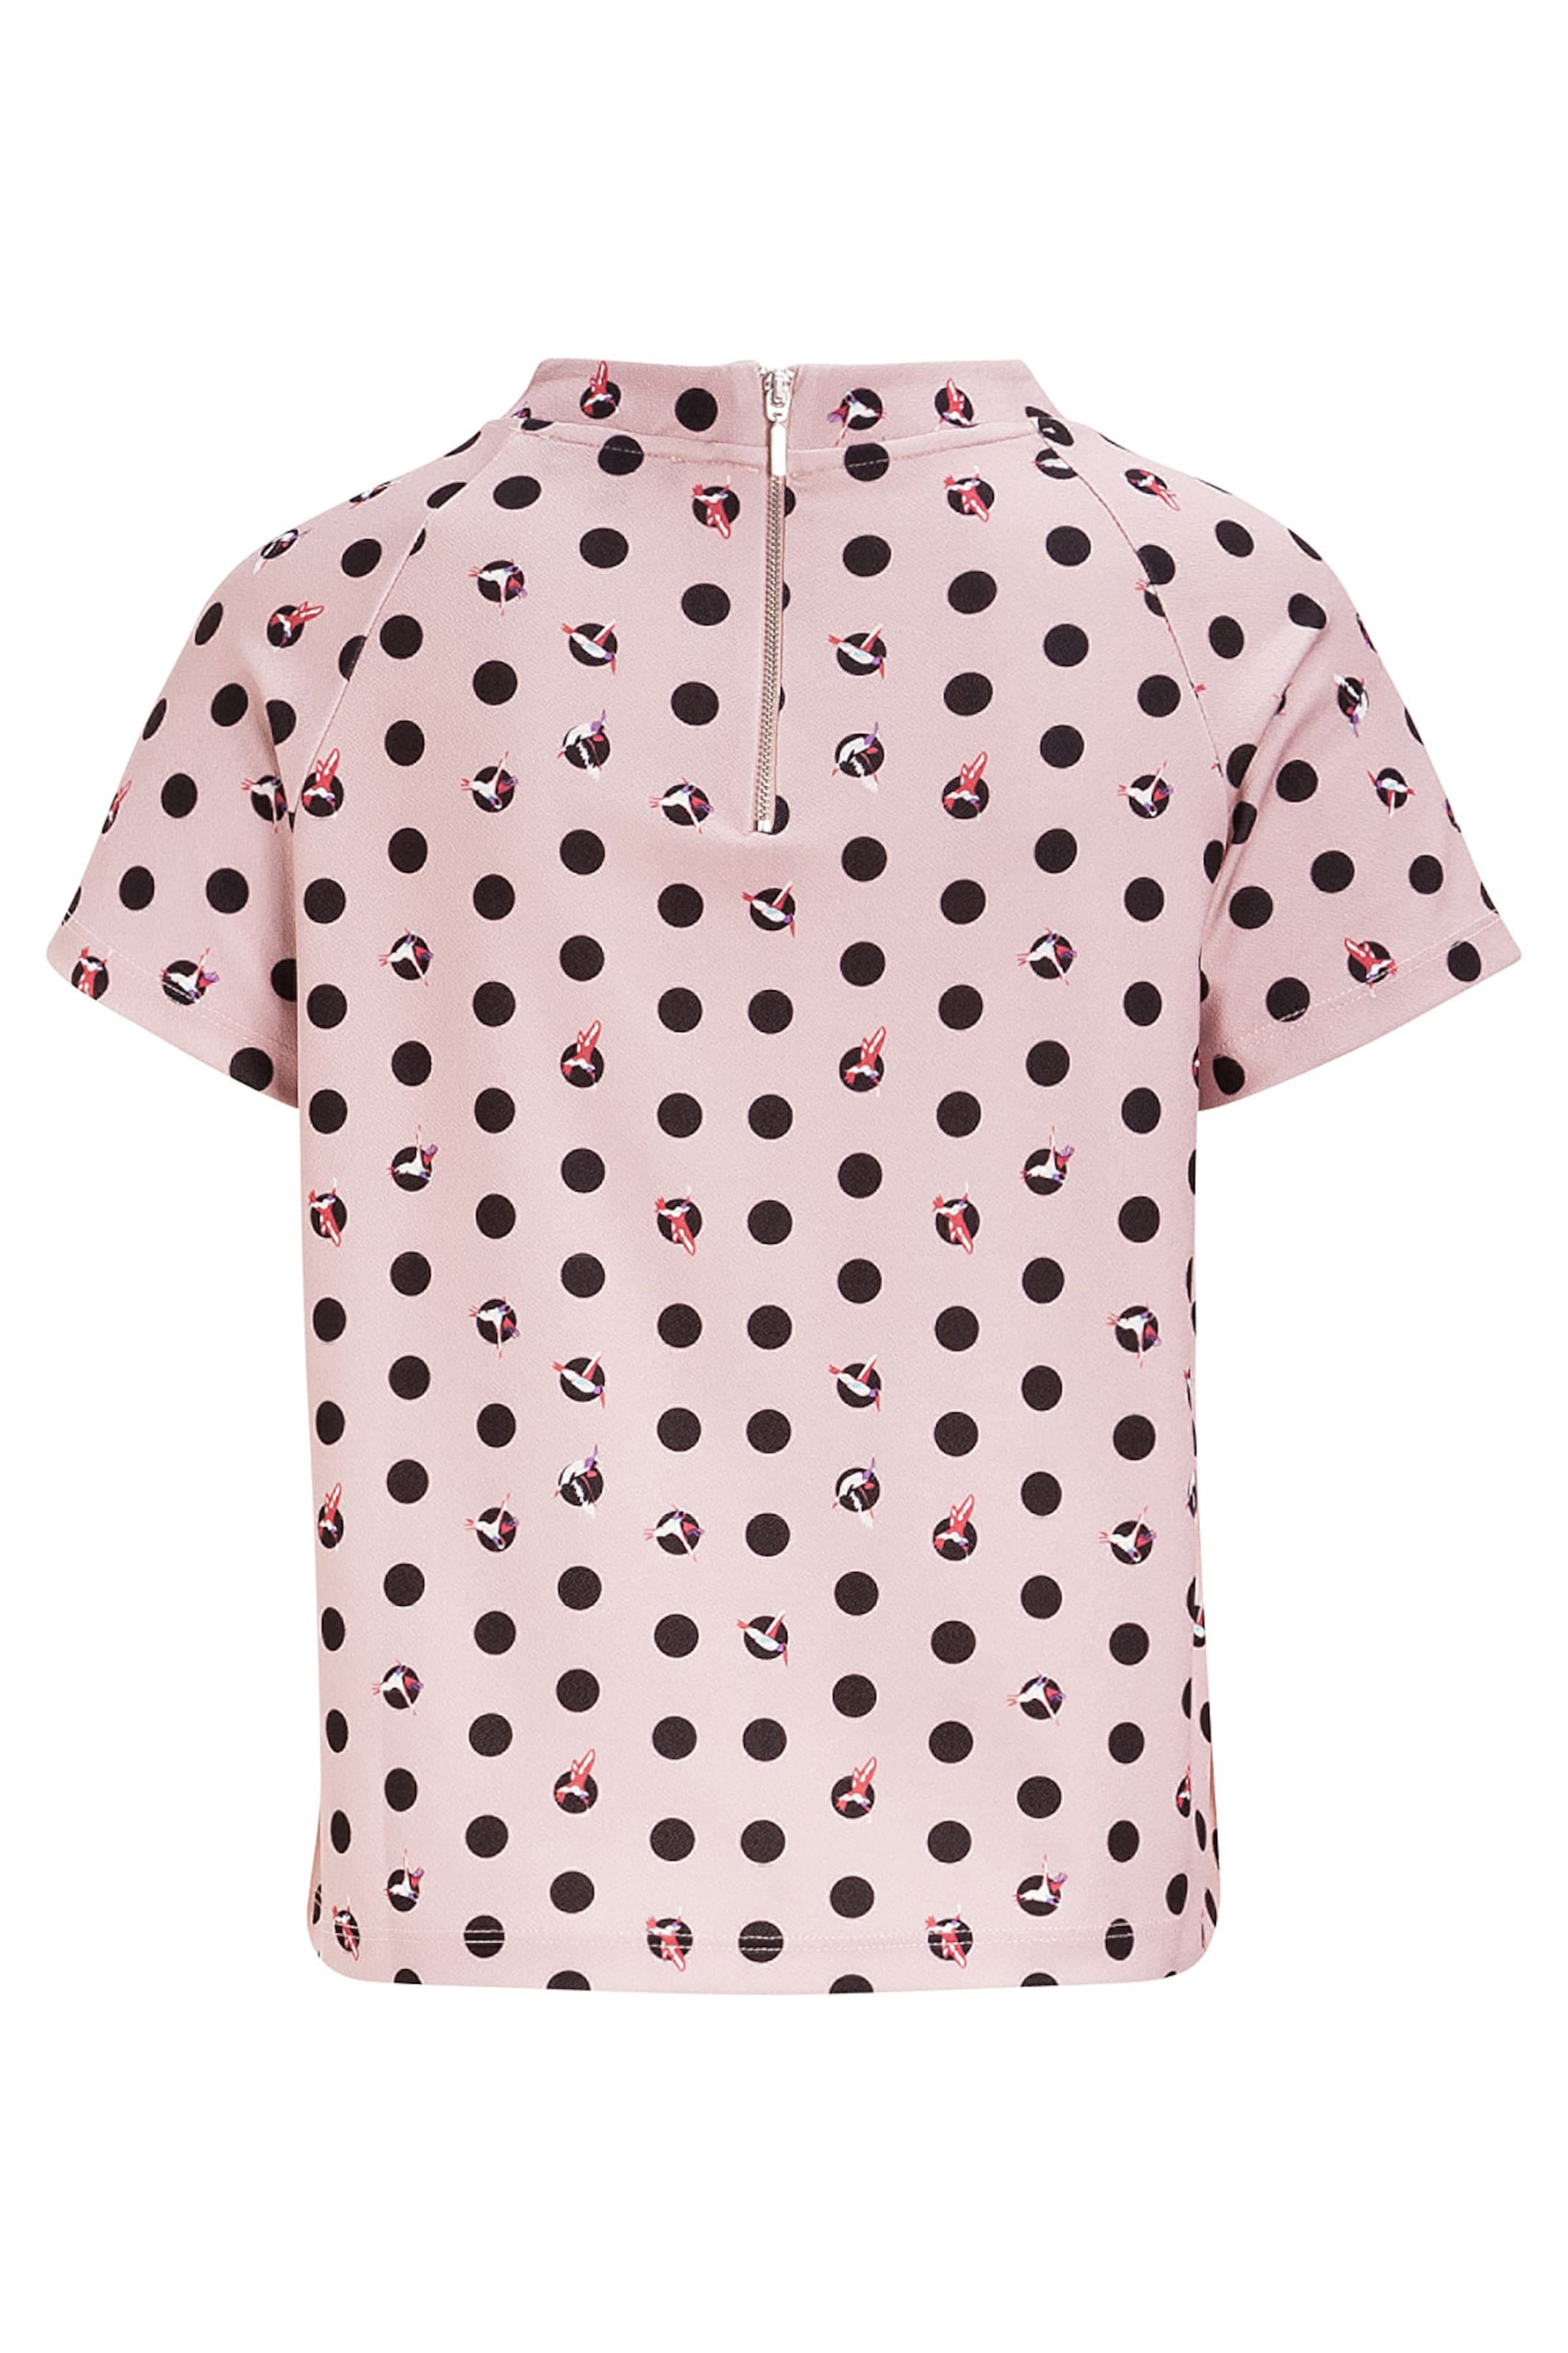 MORE & MORE Shirt, birdy dots Print